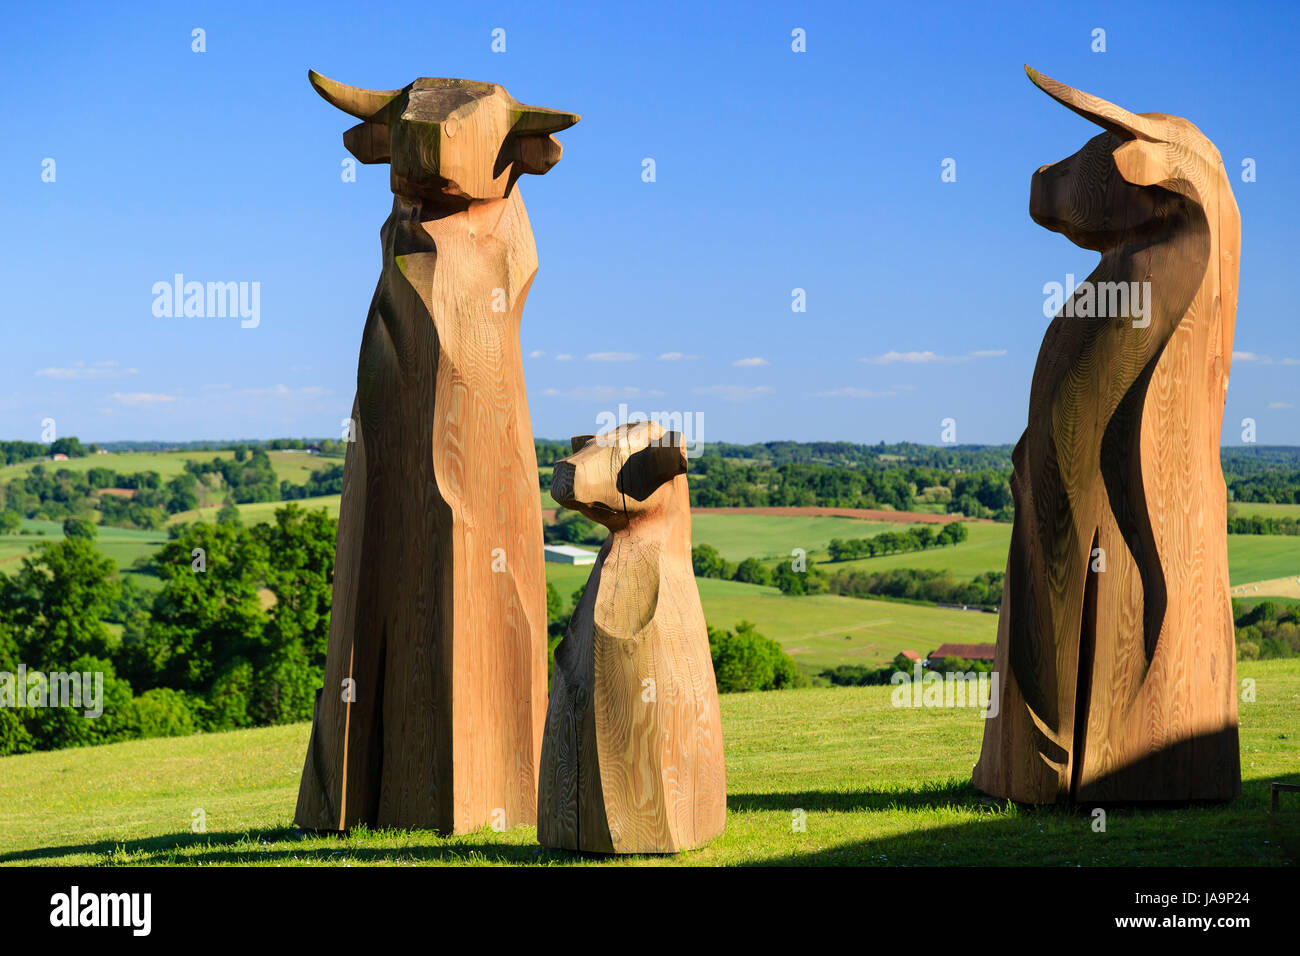 France, Haute Vienne, Boisseuil, Pole of Lanaud to promote the limousine breed - Stock Image